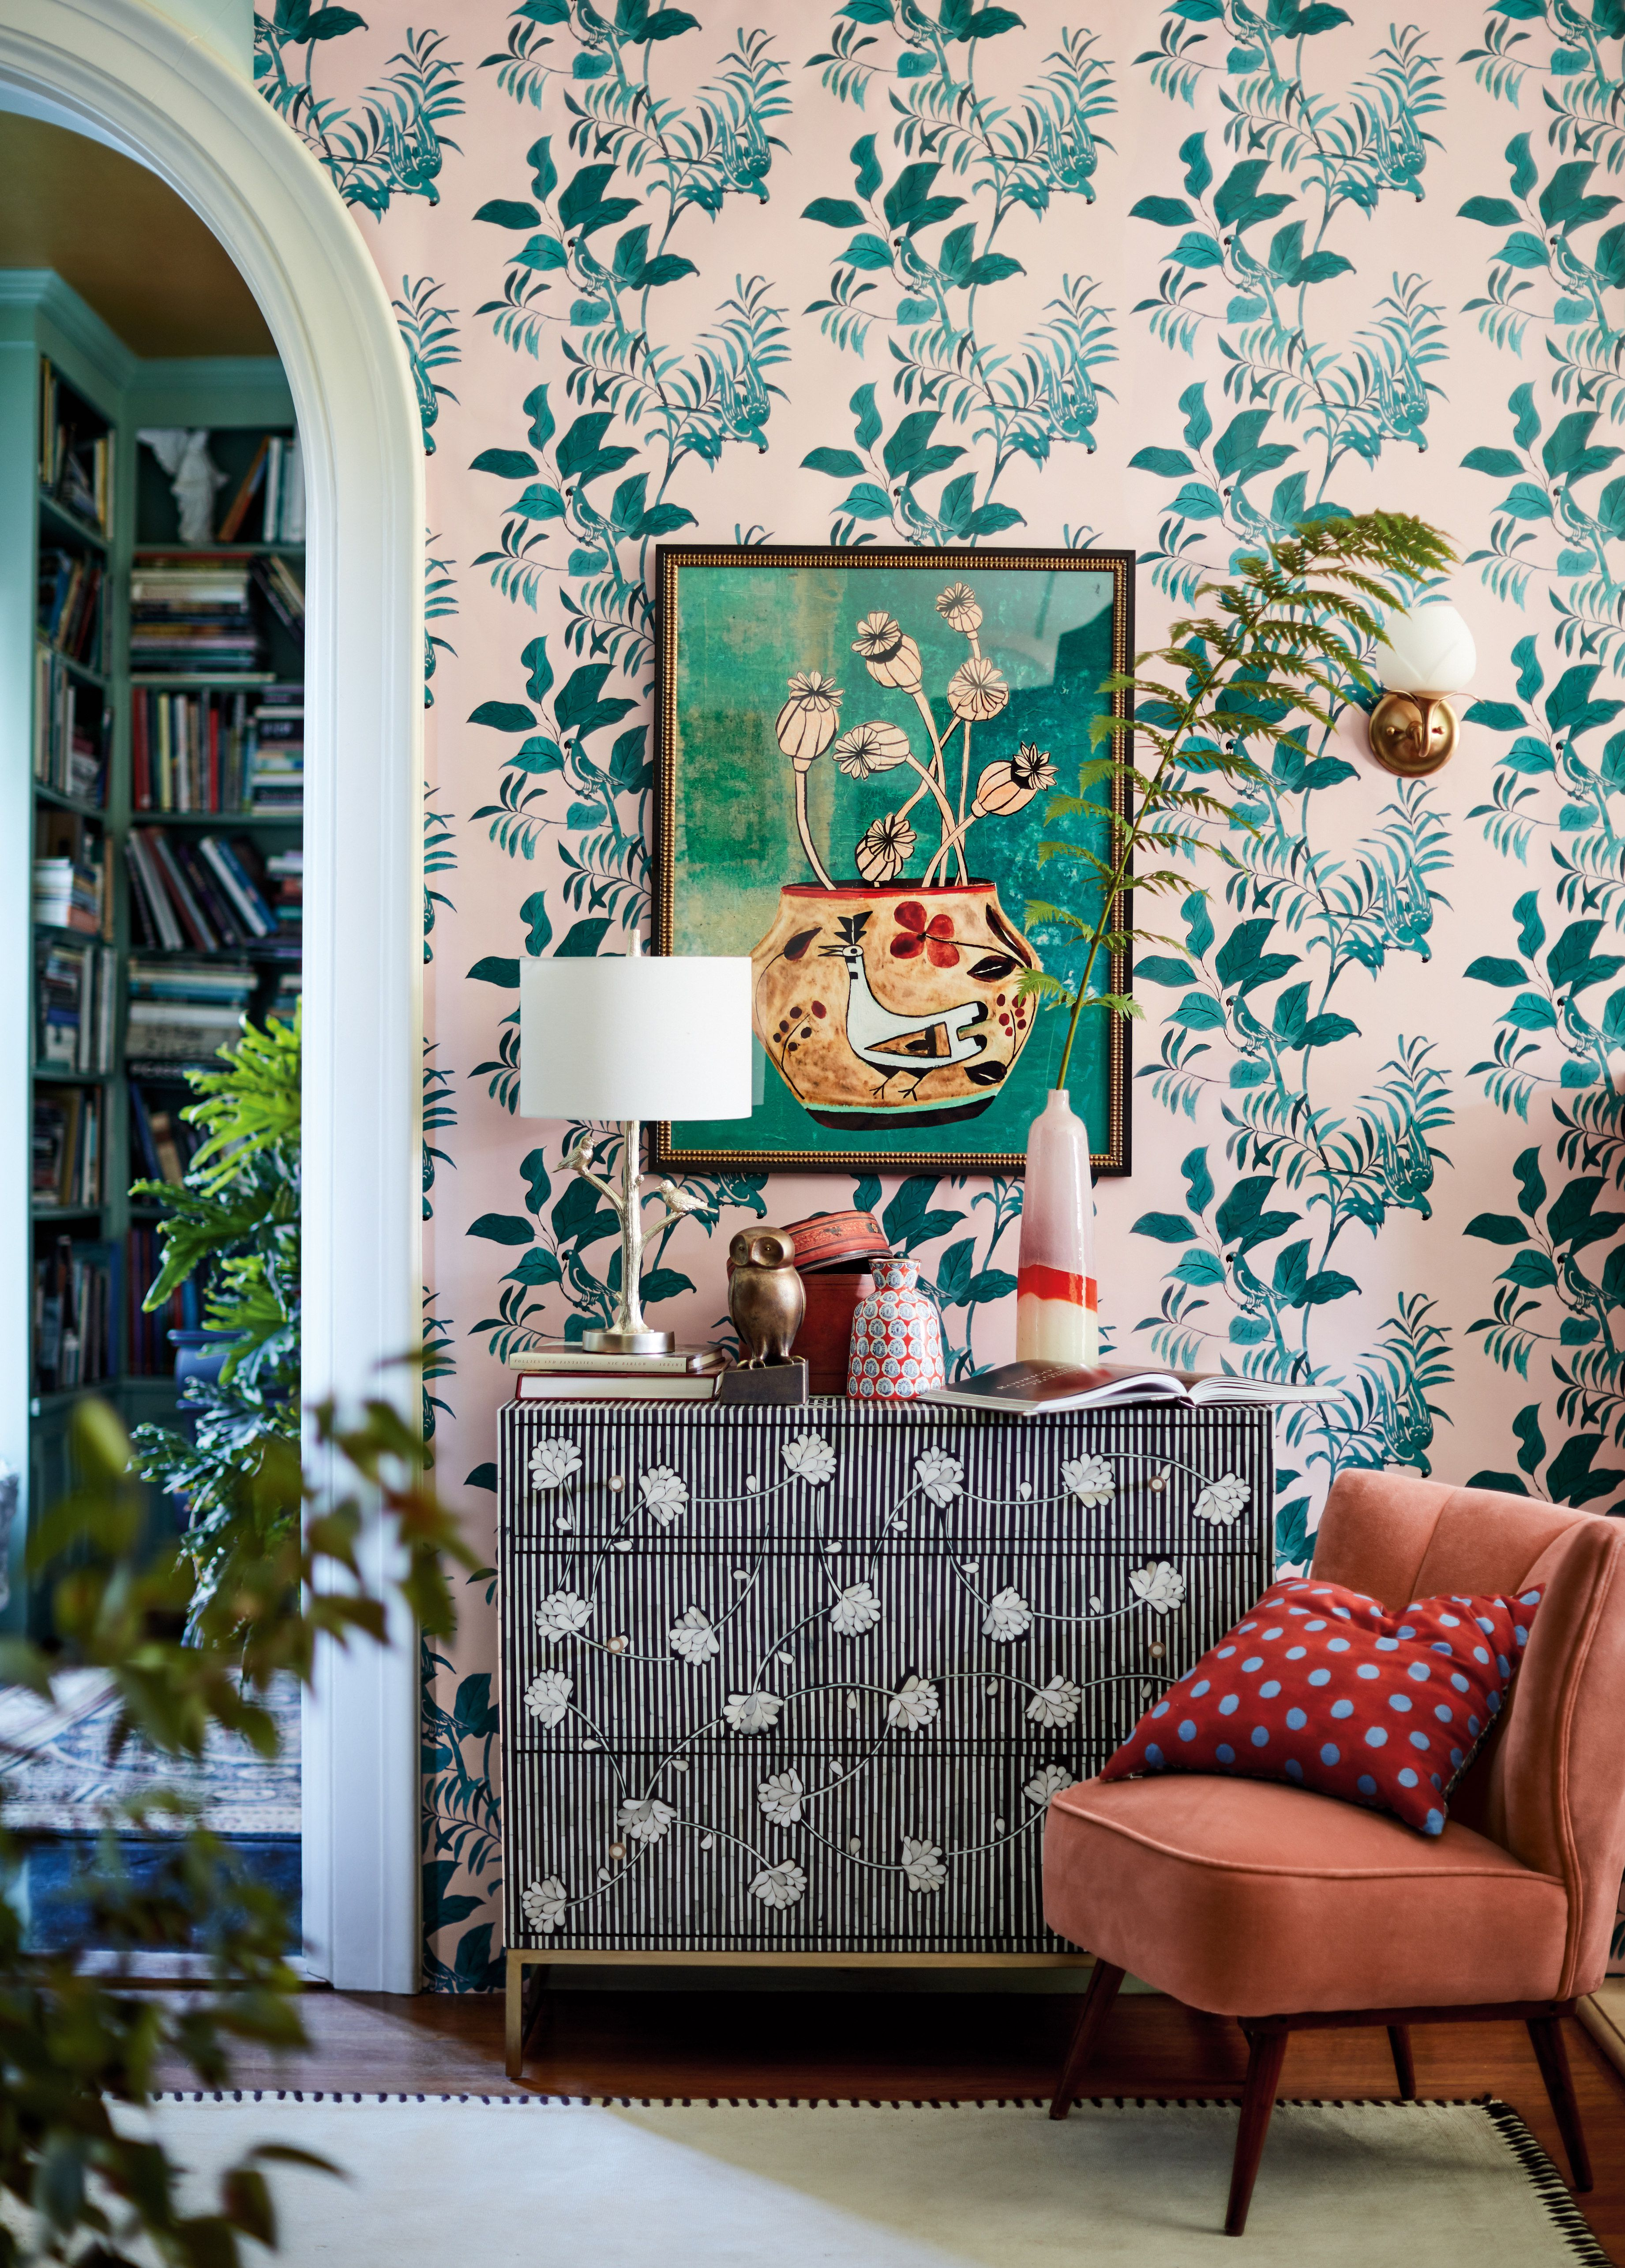 Anthropologie Just Launched Its Spring 2019 Collection